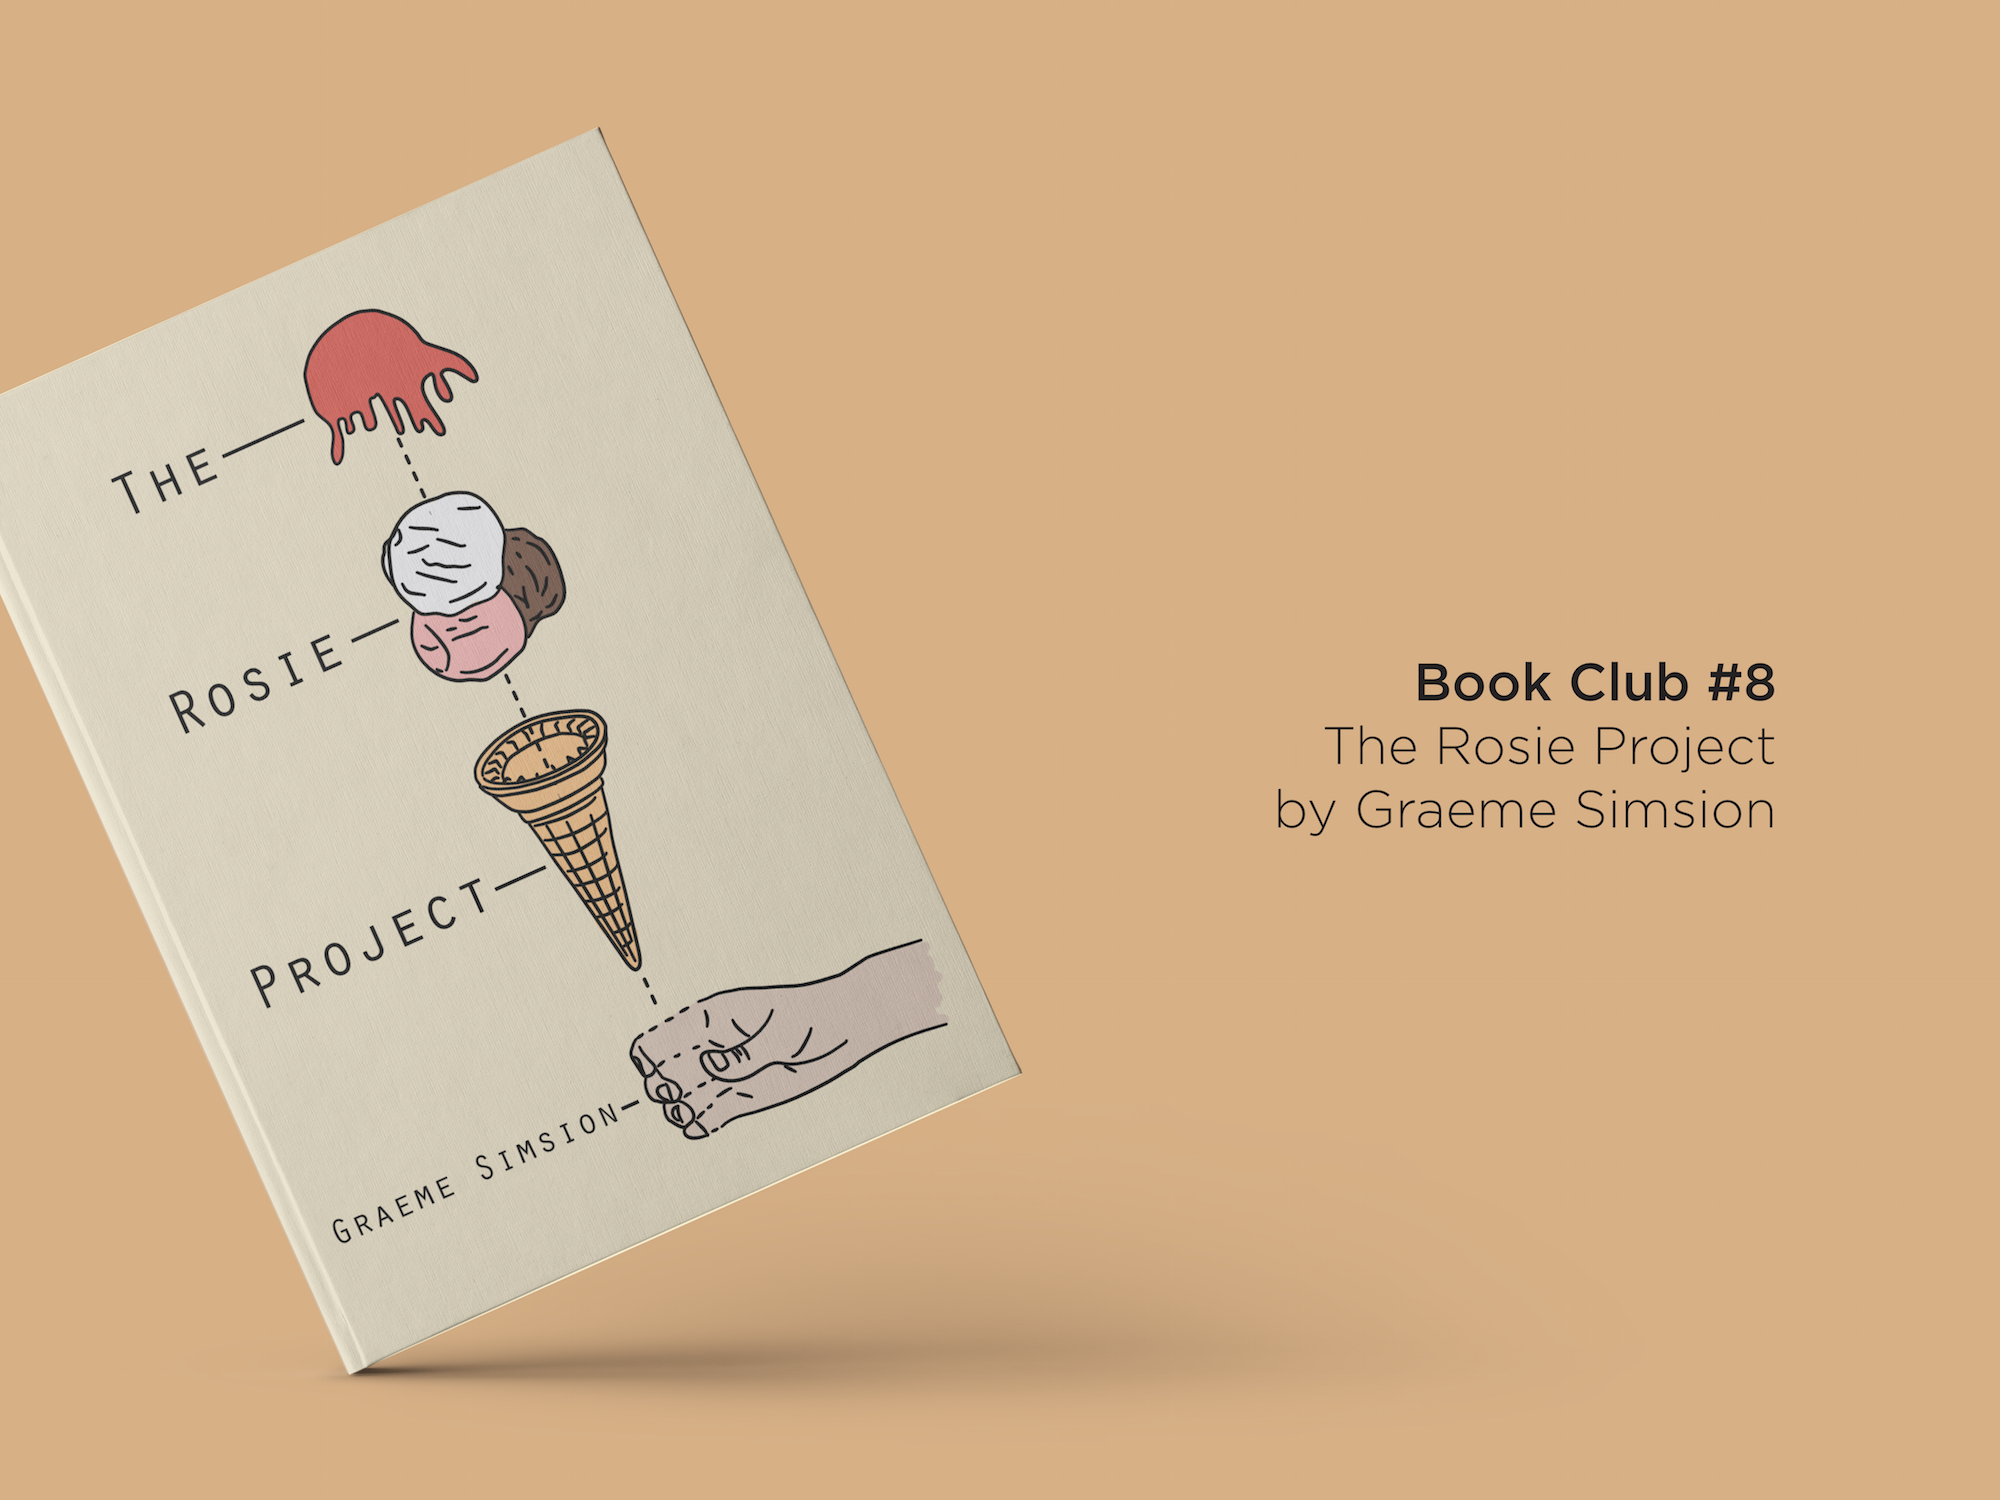 Book Club 8: The Rosie Project Graeme Simsion